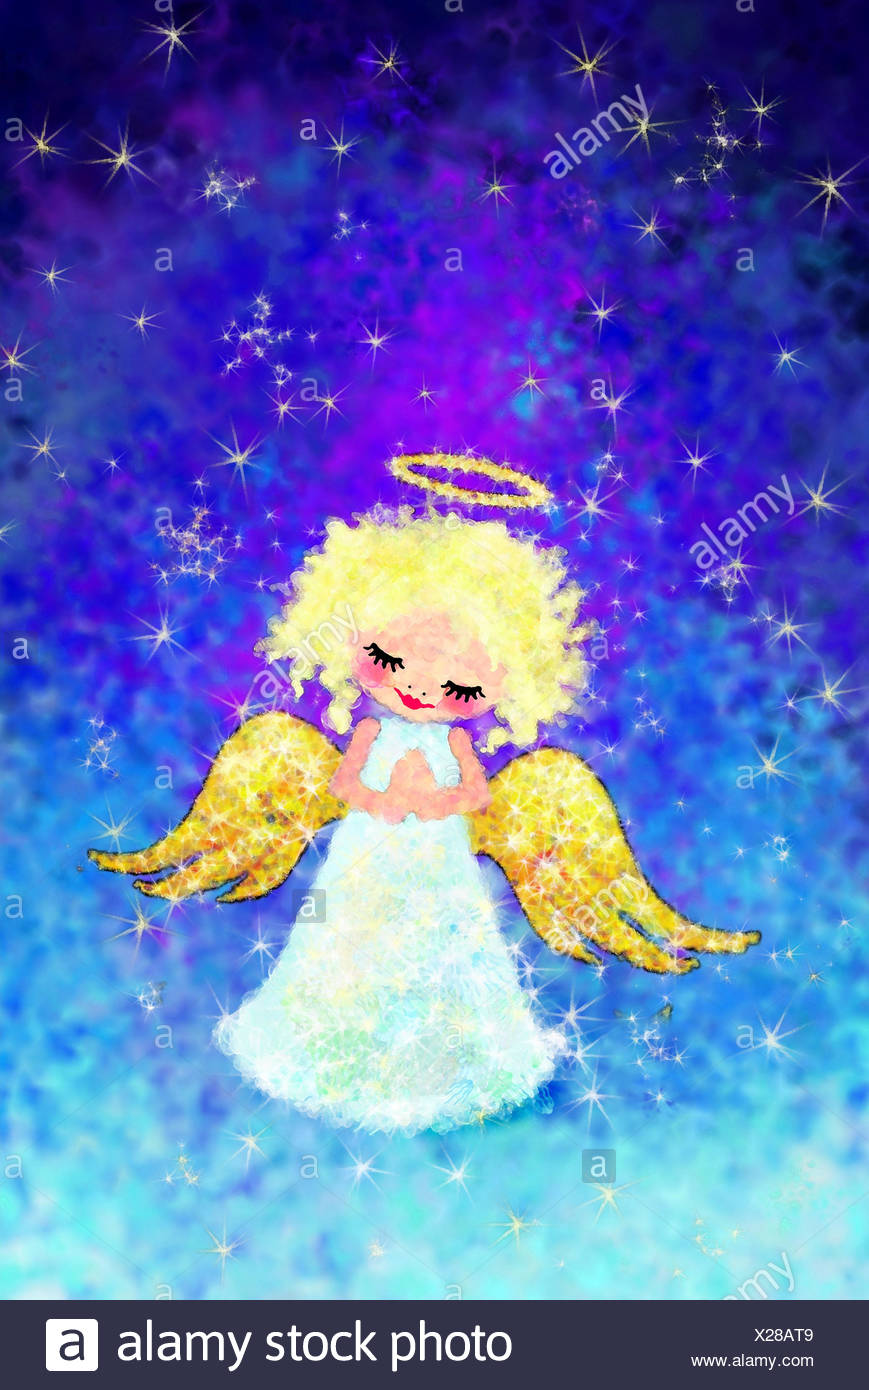 Illustration,angel,happily,pious,hands folded,stars,heavens